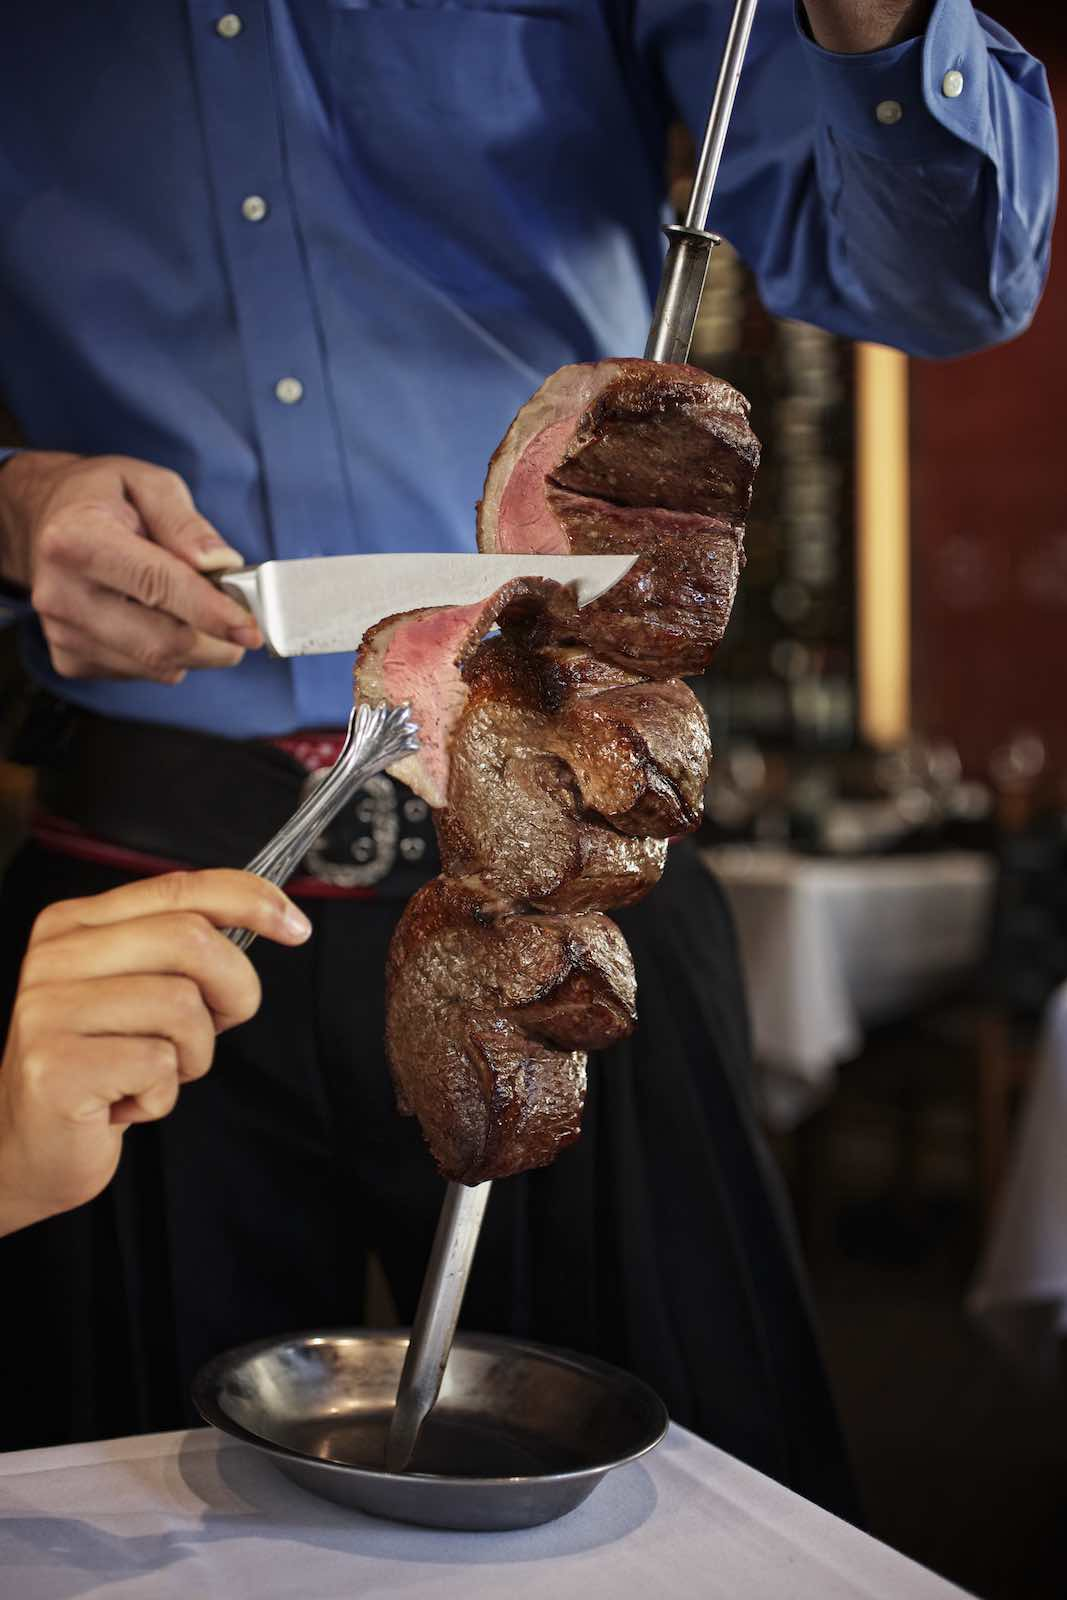 Jody Horton Photography - Fogo de Chao Restaurant meat cutting scene